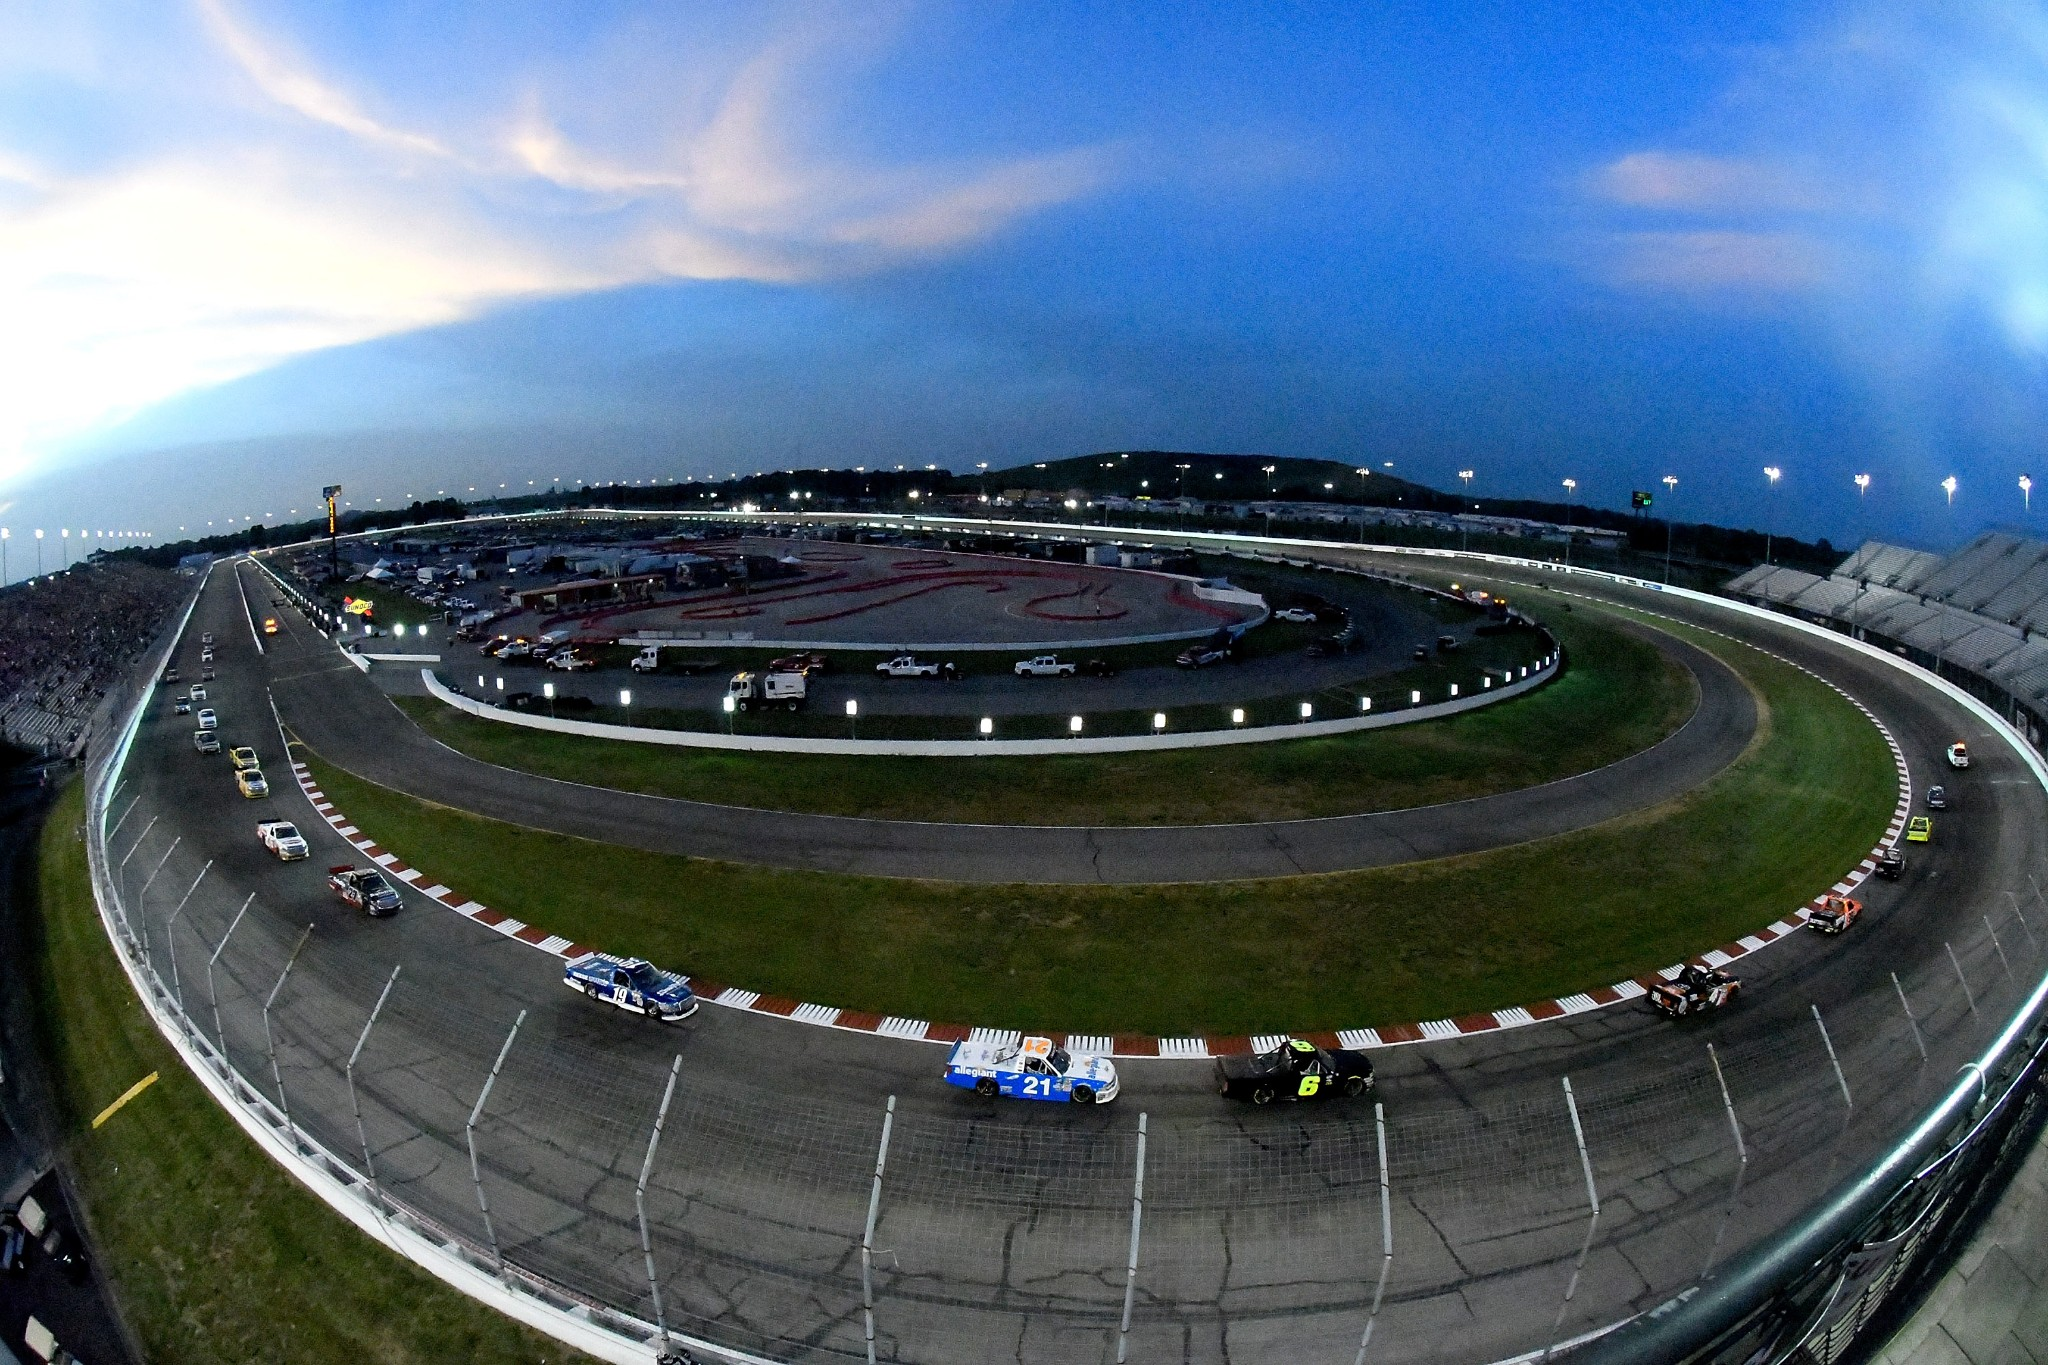 ACKERMAN: St. Louis is putting itself on the map as a premier racing